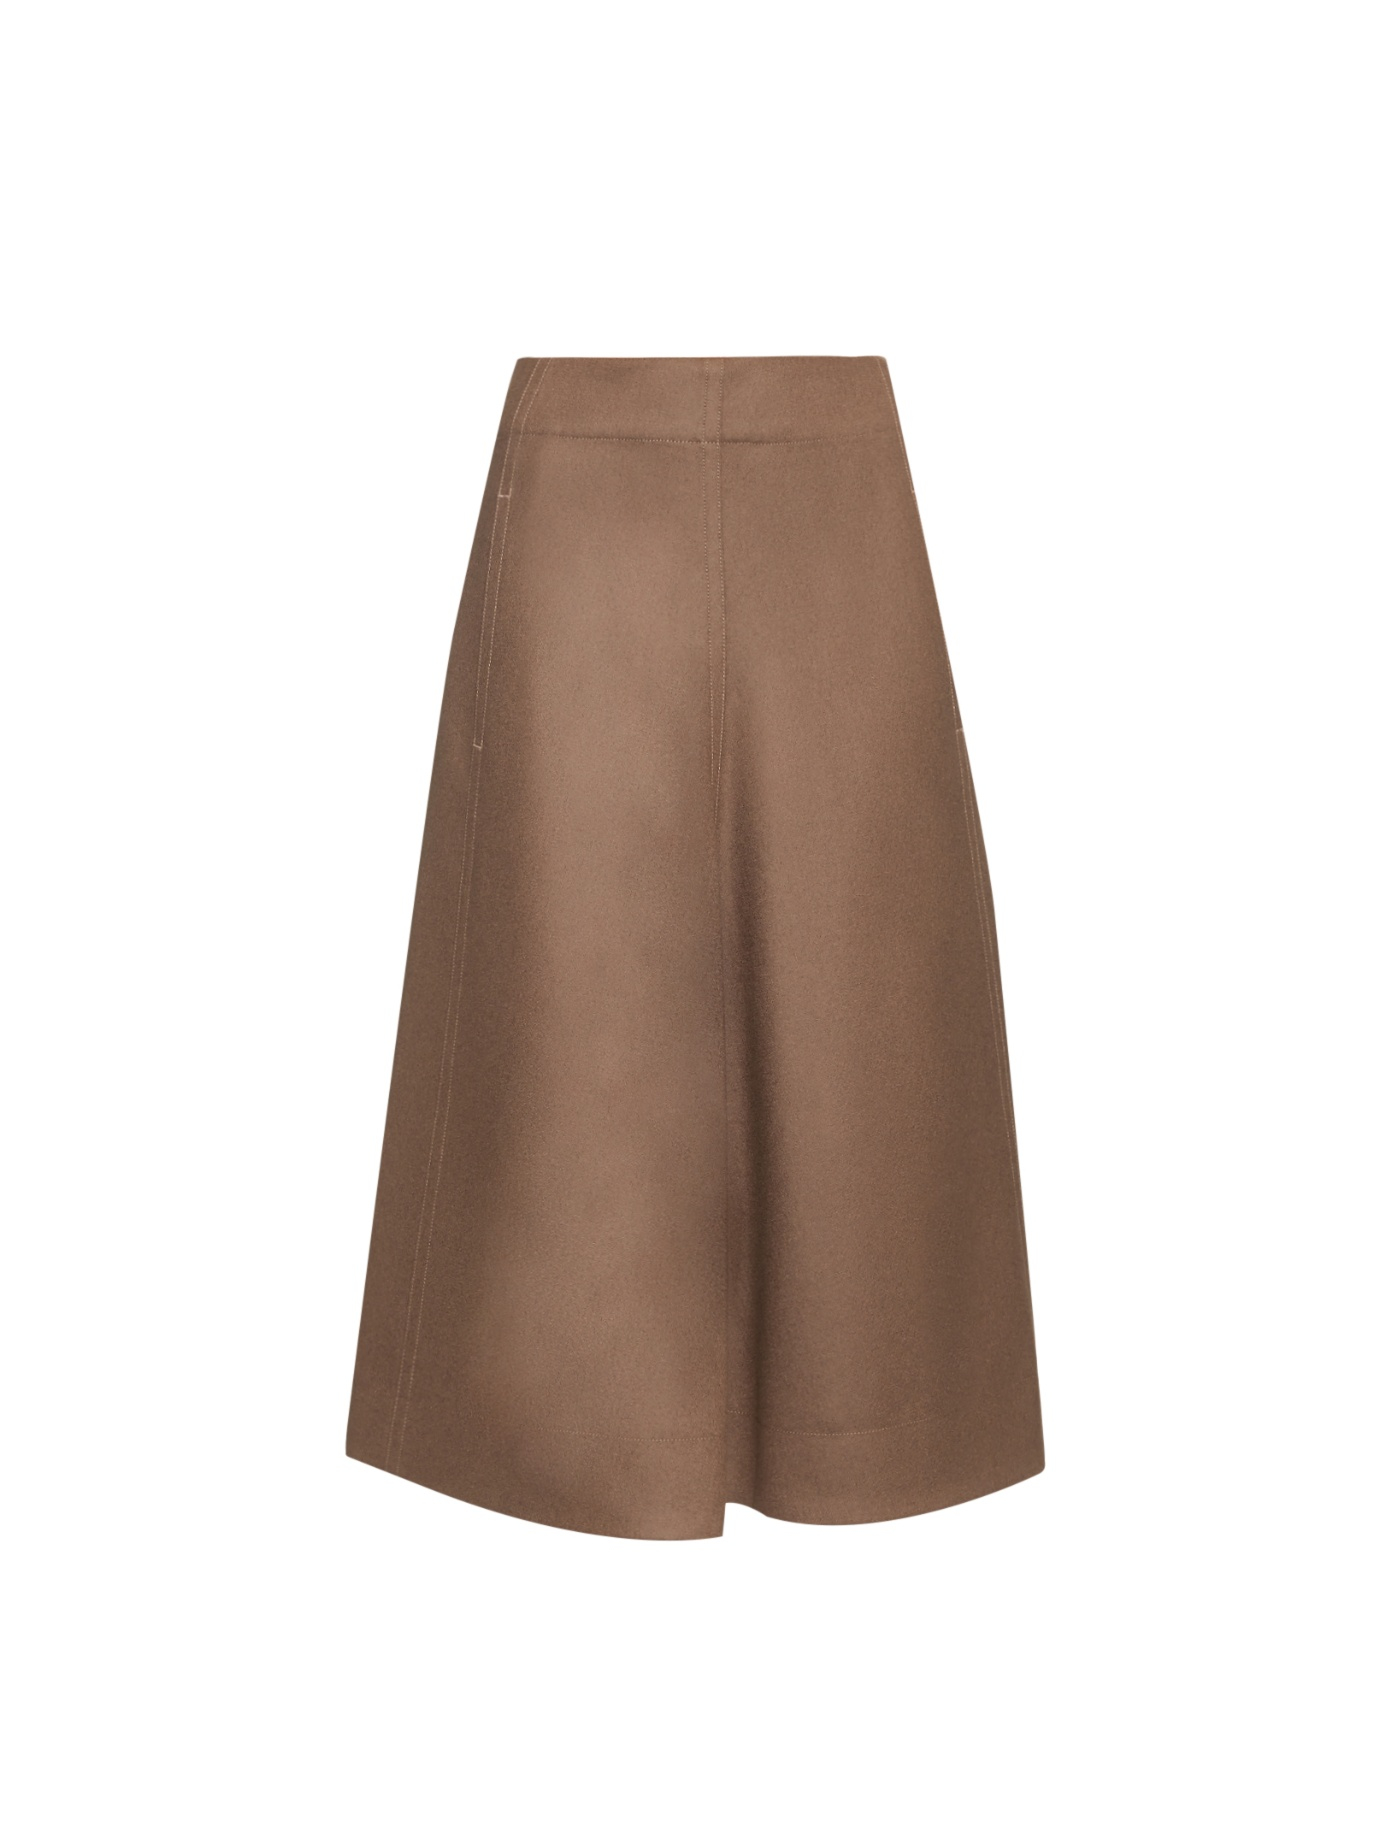 Lemaire High-waist A-line Wool Skirt in Brown | Lyst